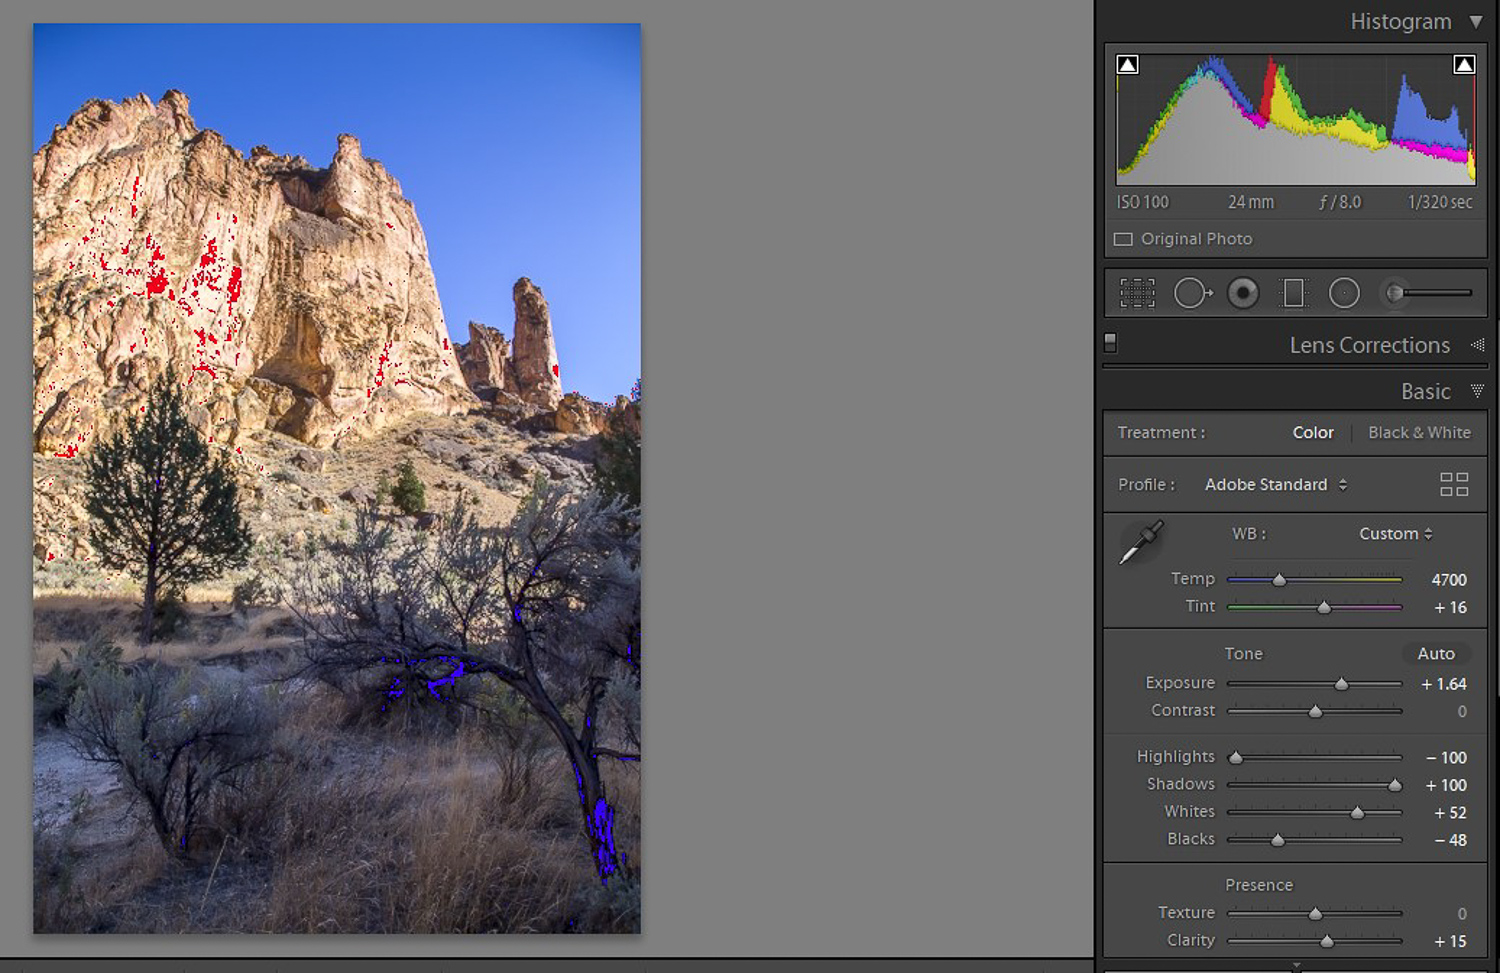 View the blown-out highlights and blocked-up shadows with the tools in Lightroom